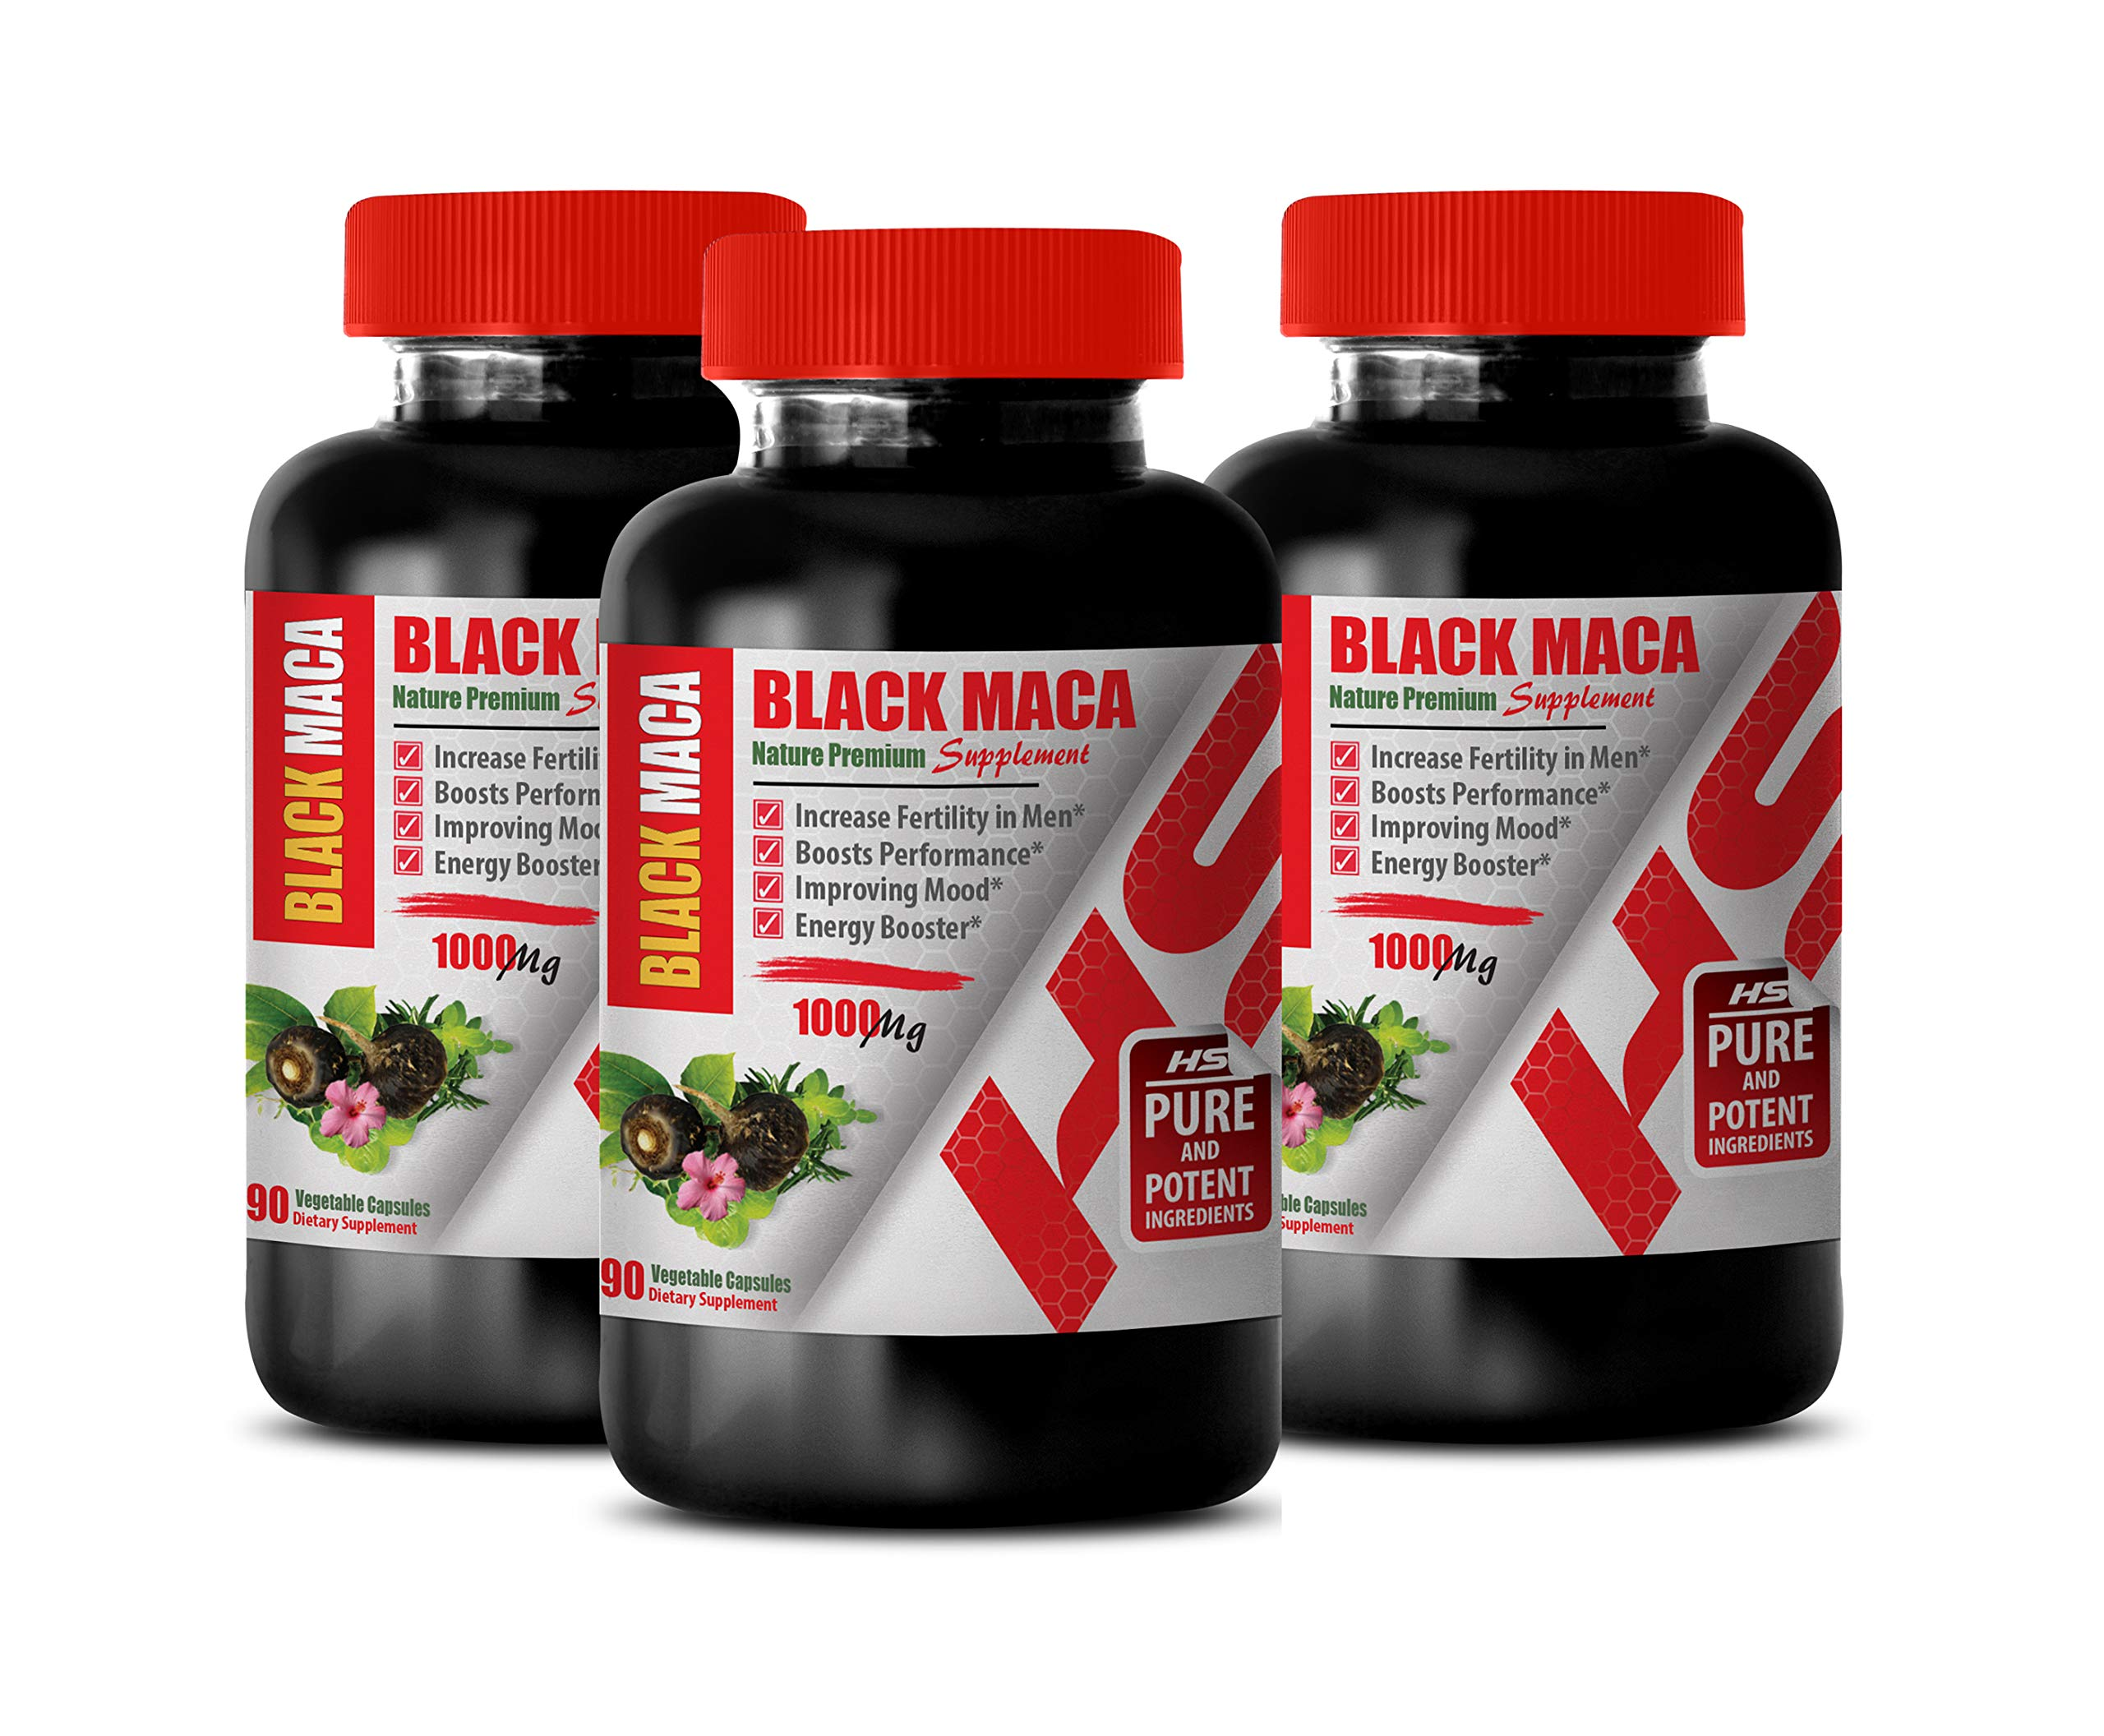 Performance Booster for Men - Black MACA 1000 Mg - Natural Premium Supplement - maca Supplement for Men - 3 Bottles 270 Vegetable Capsules by Healthy Supplements LLC